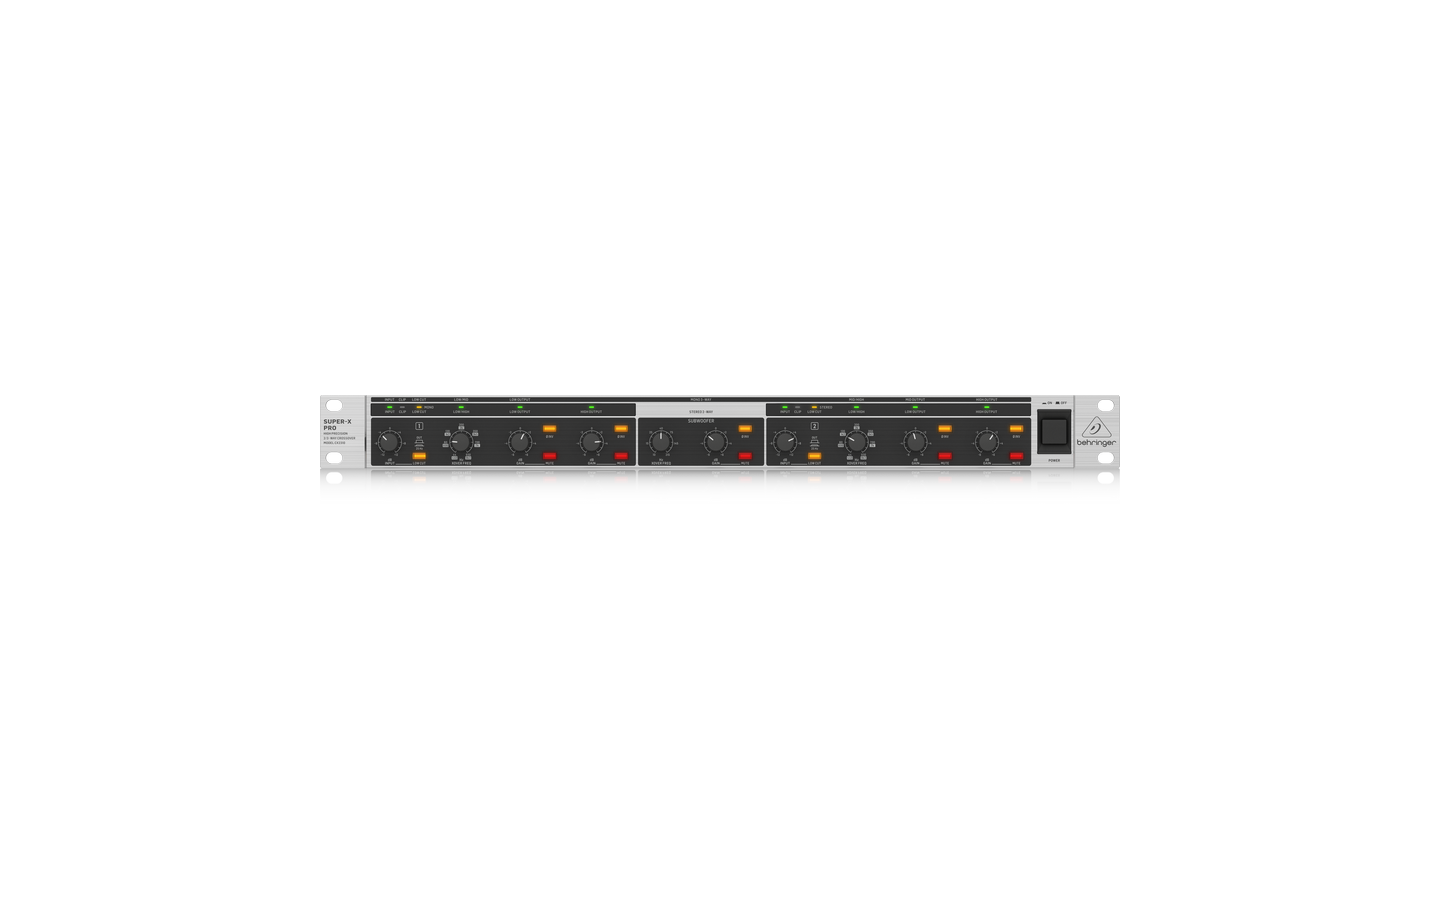 Behringer CX2310 V2 Stereo 2-Way/Mono 3-Way Crossover Rack